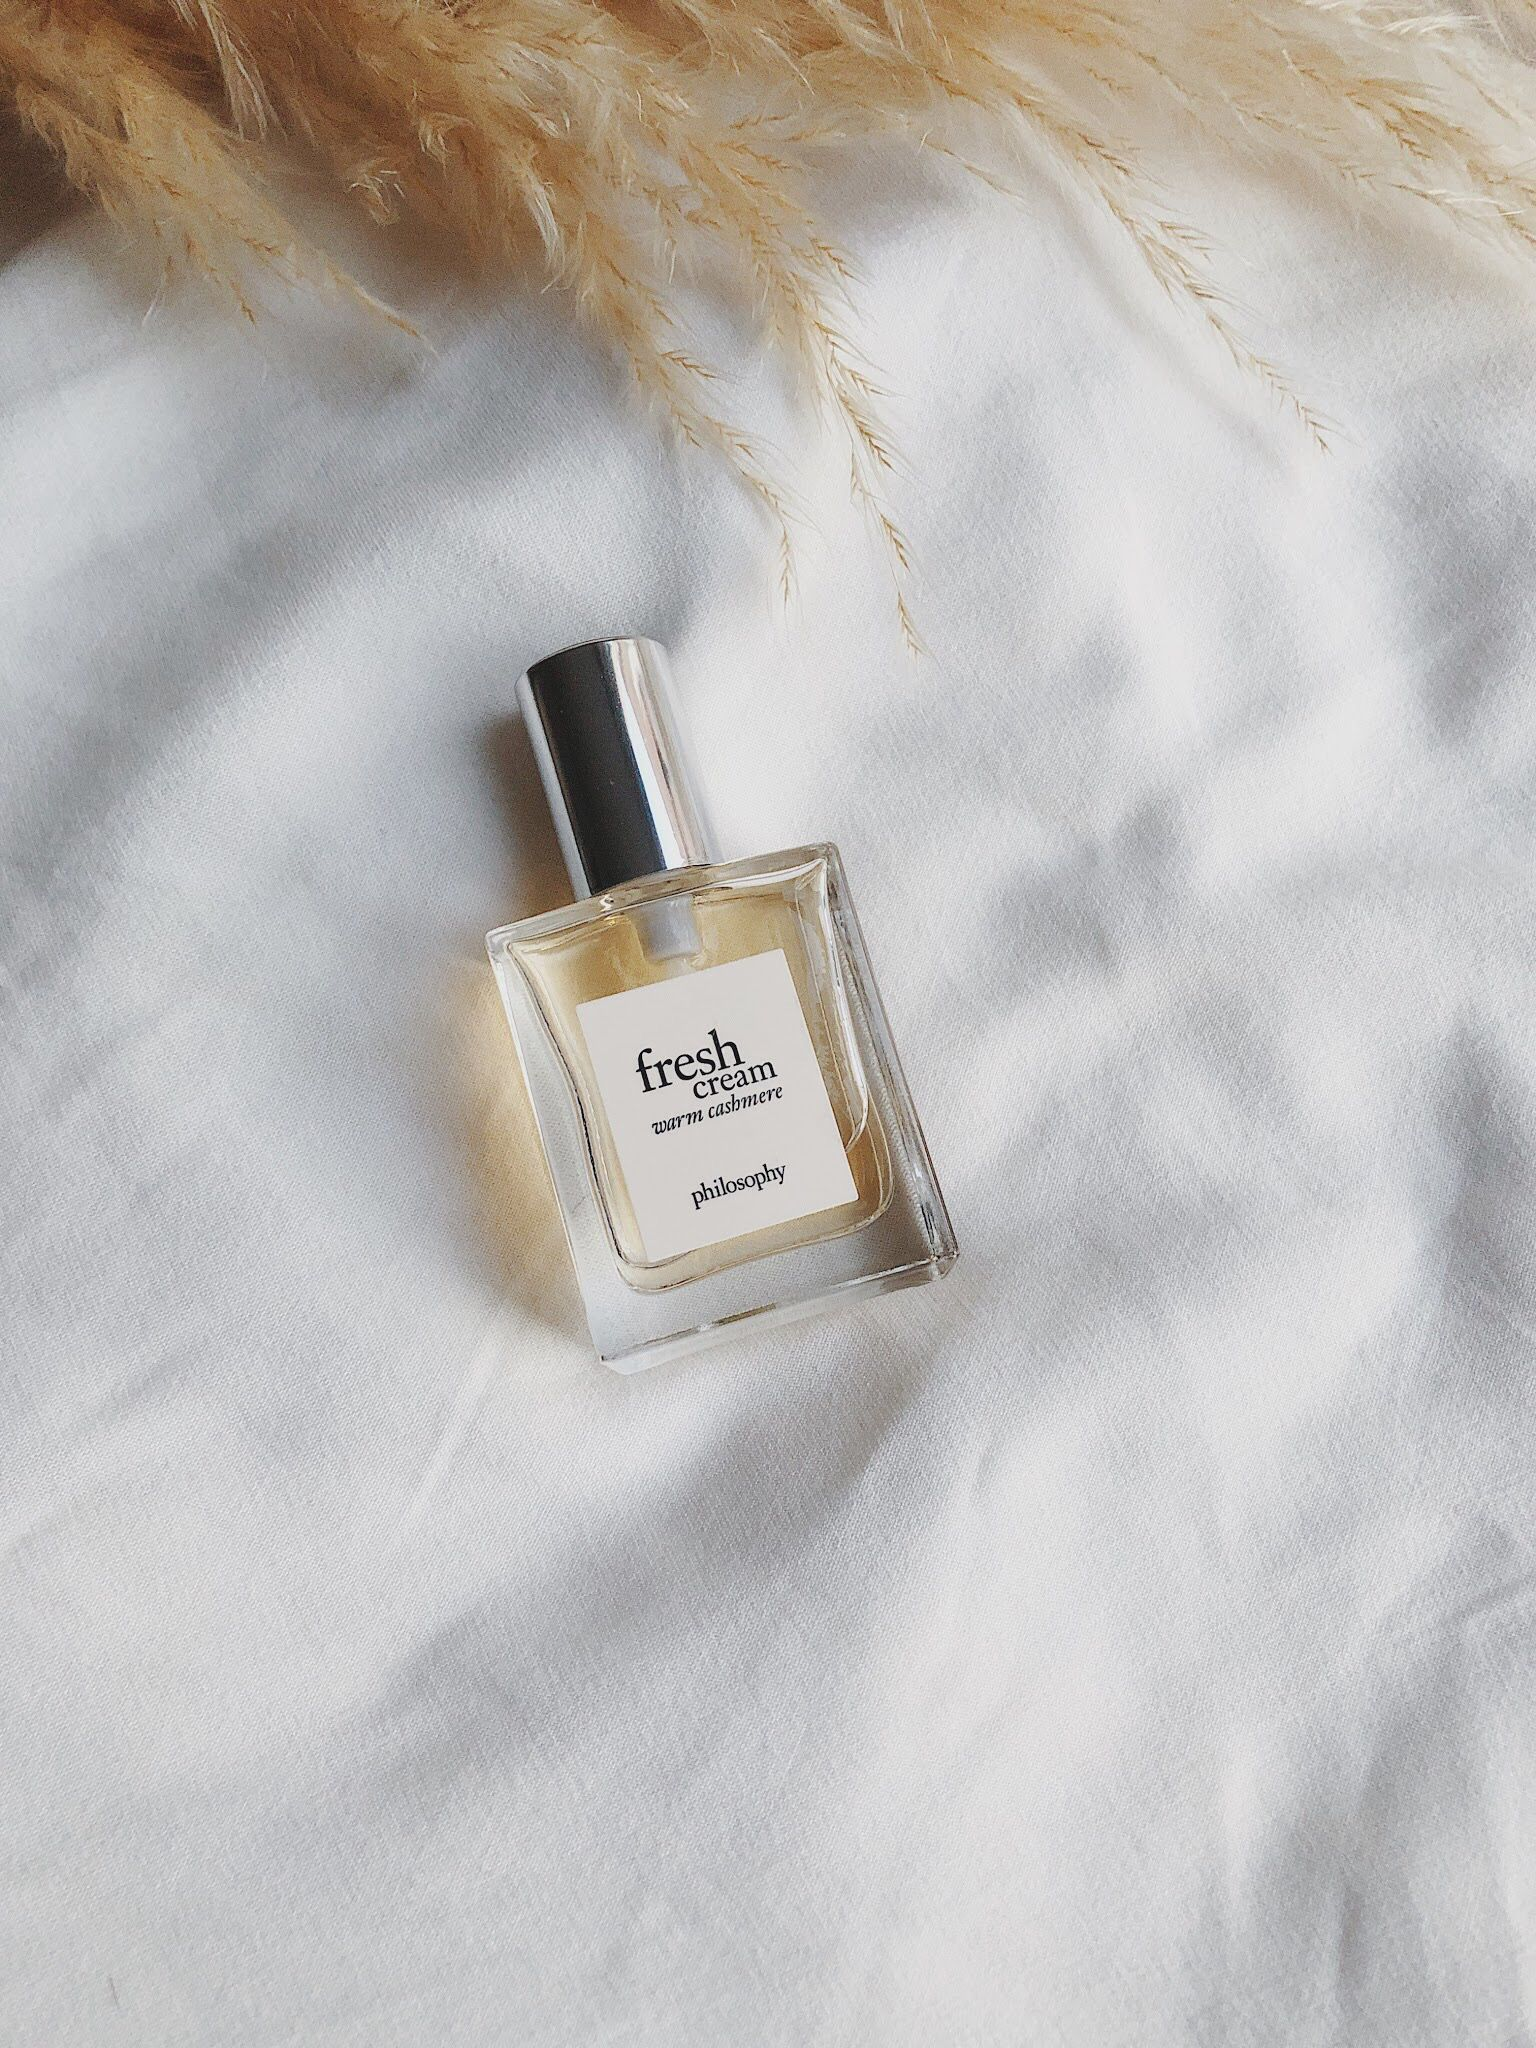 Perfume From Philosophy